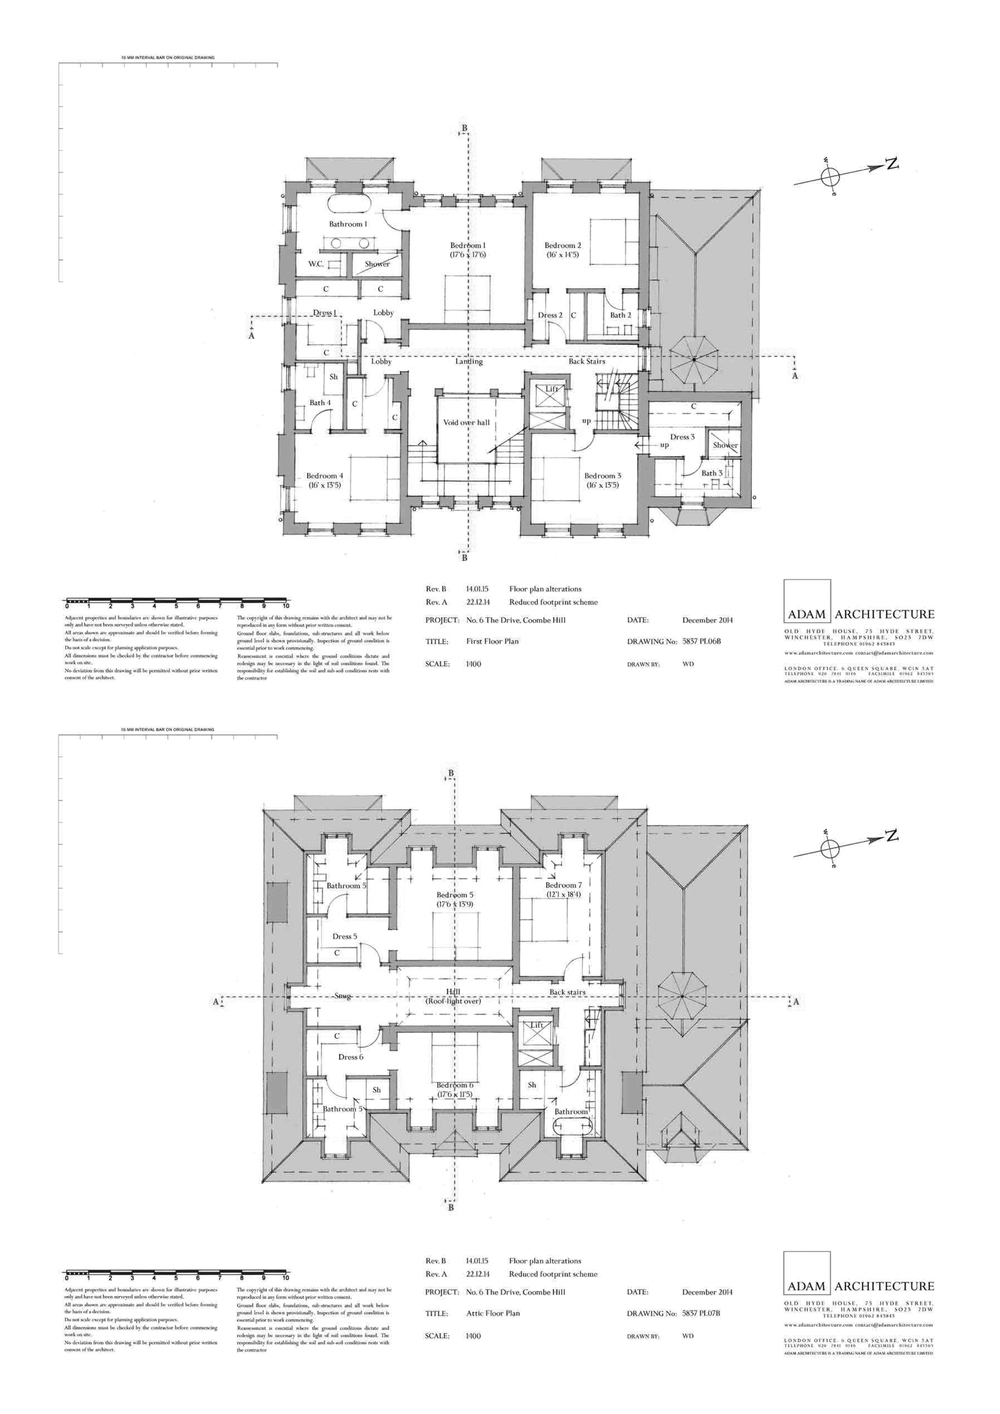 1st & Attic Floor Plan.jpg